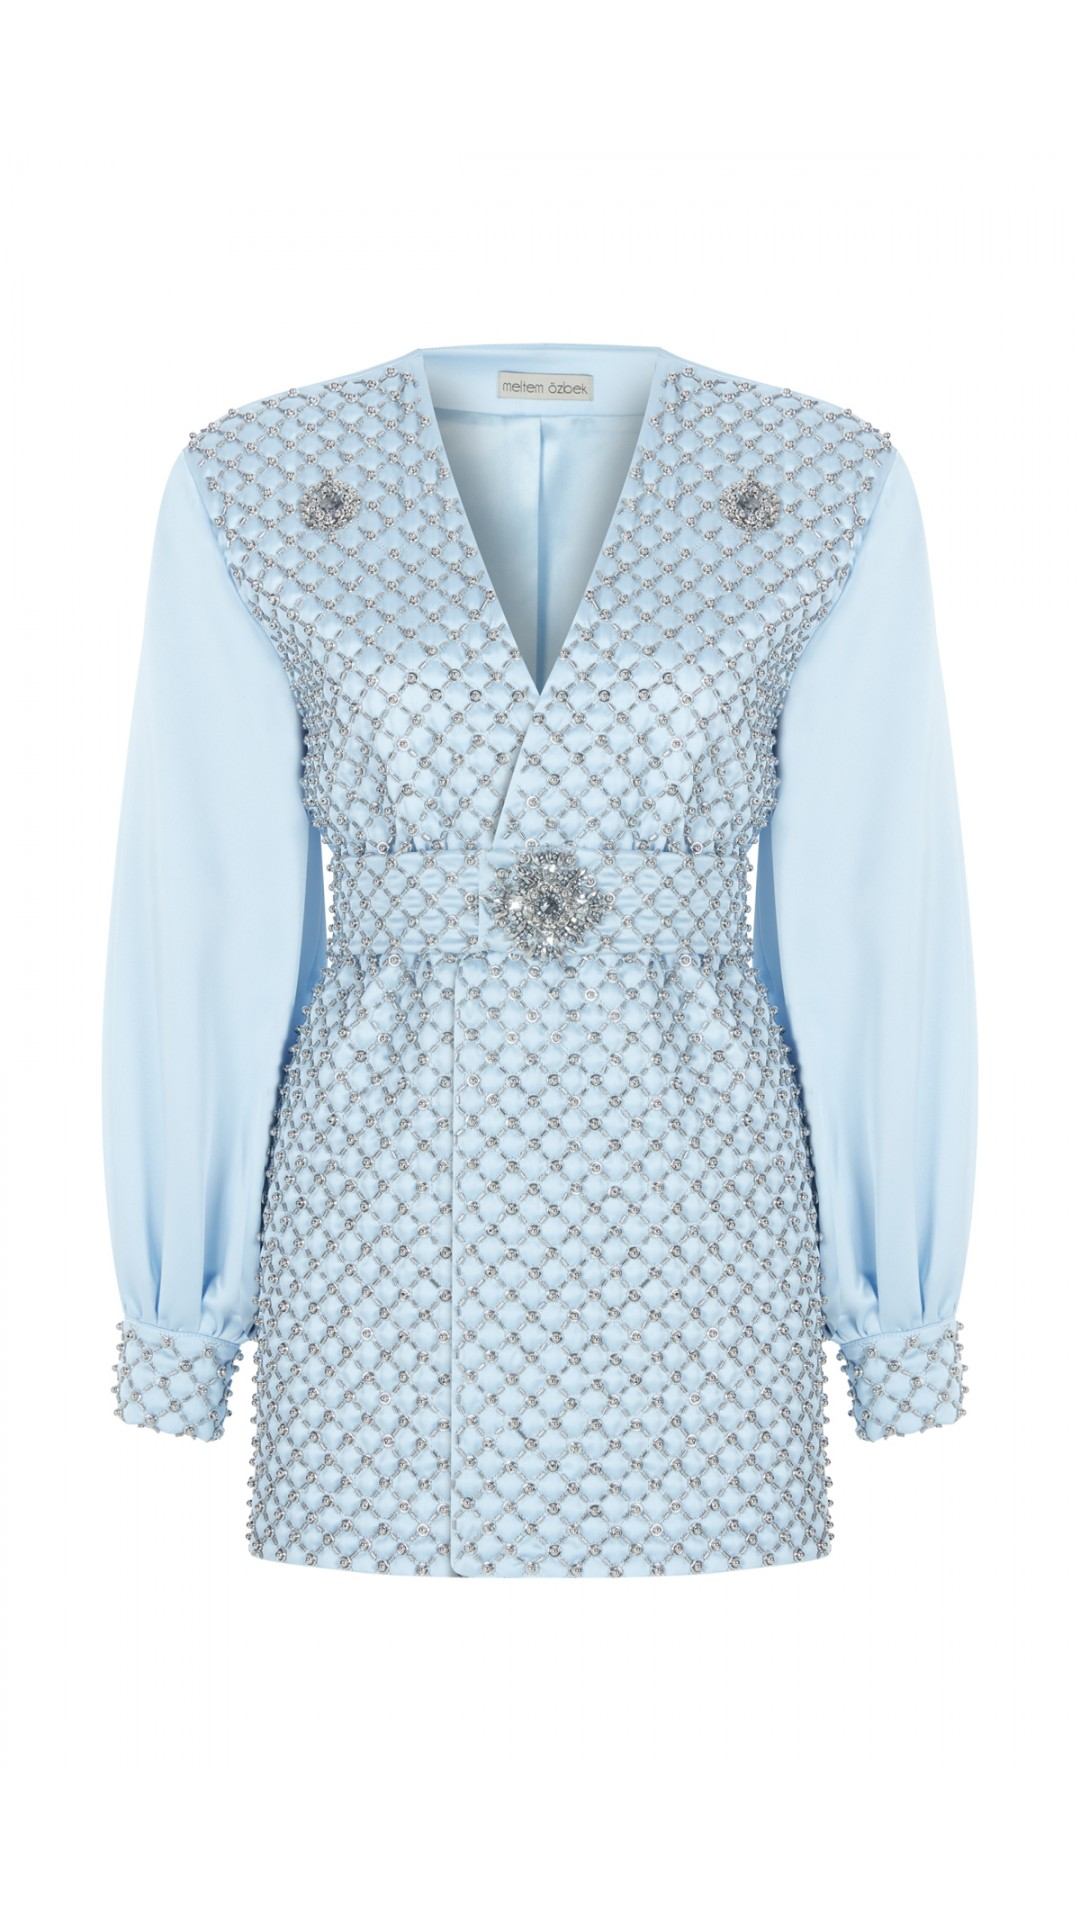 EMBROIDERED JACKET DRESS